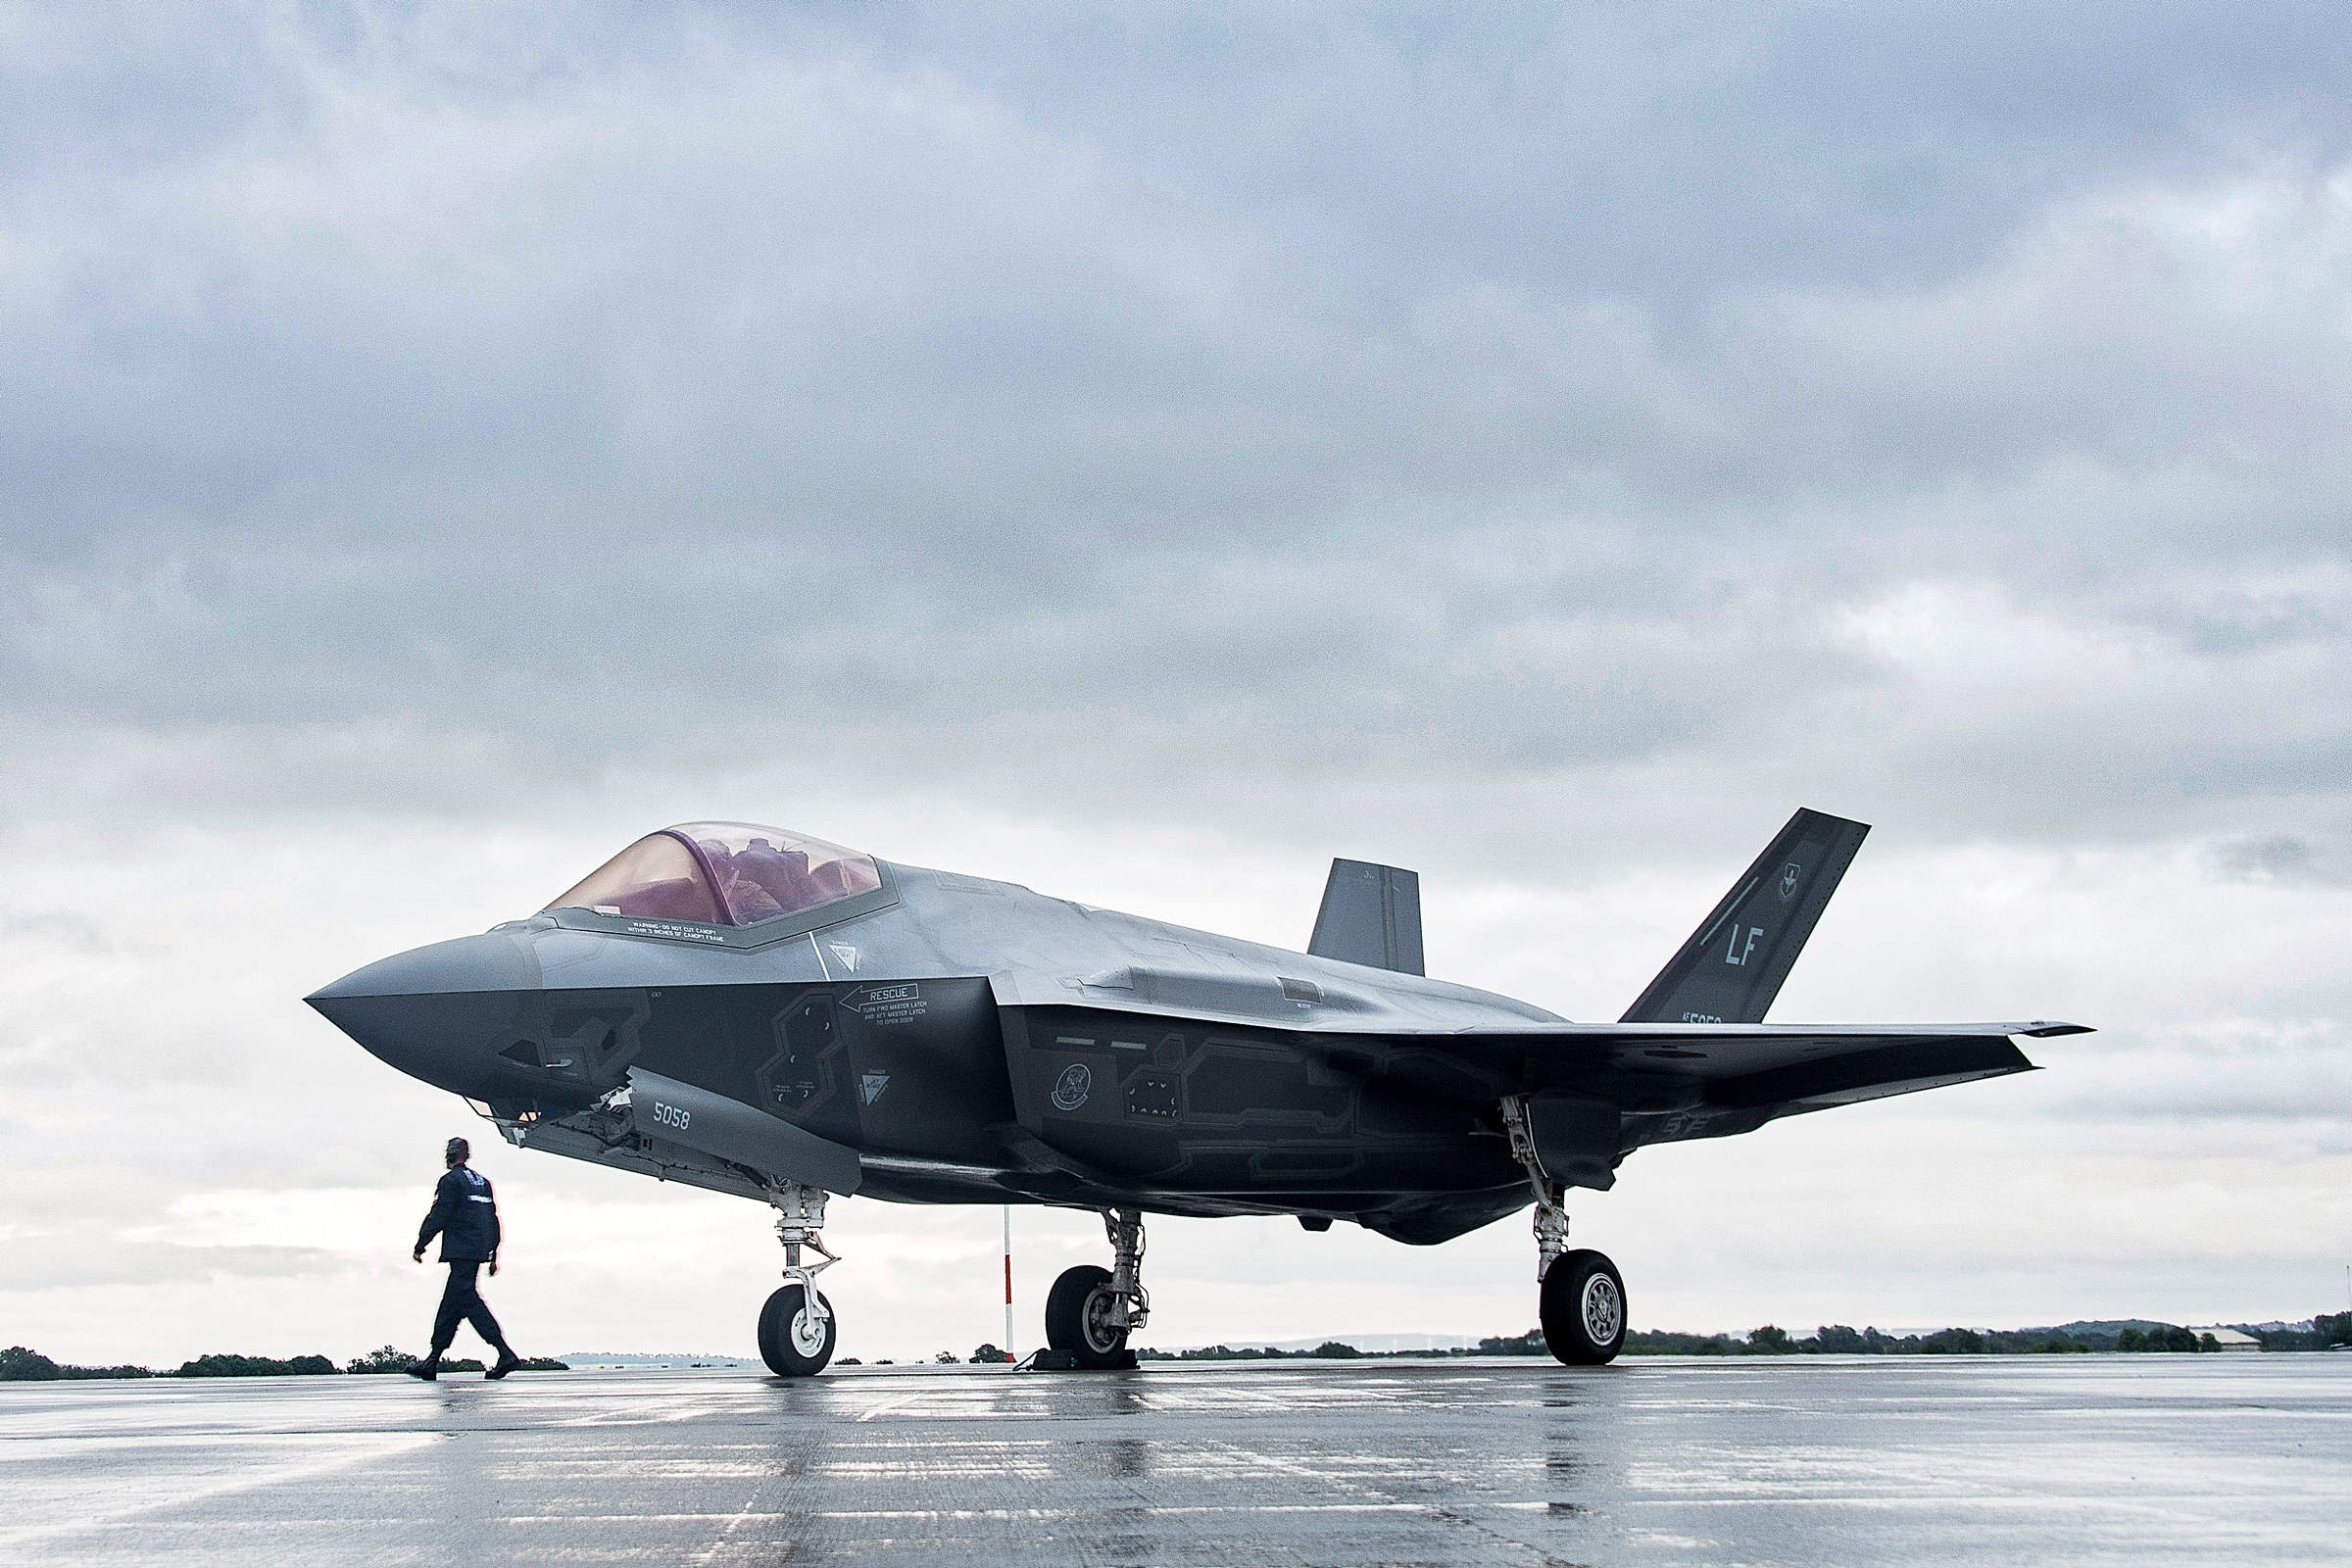 Meet the first female assigned to the Navy's F-35.